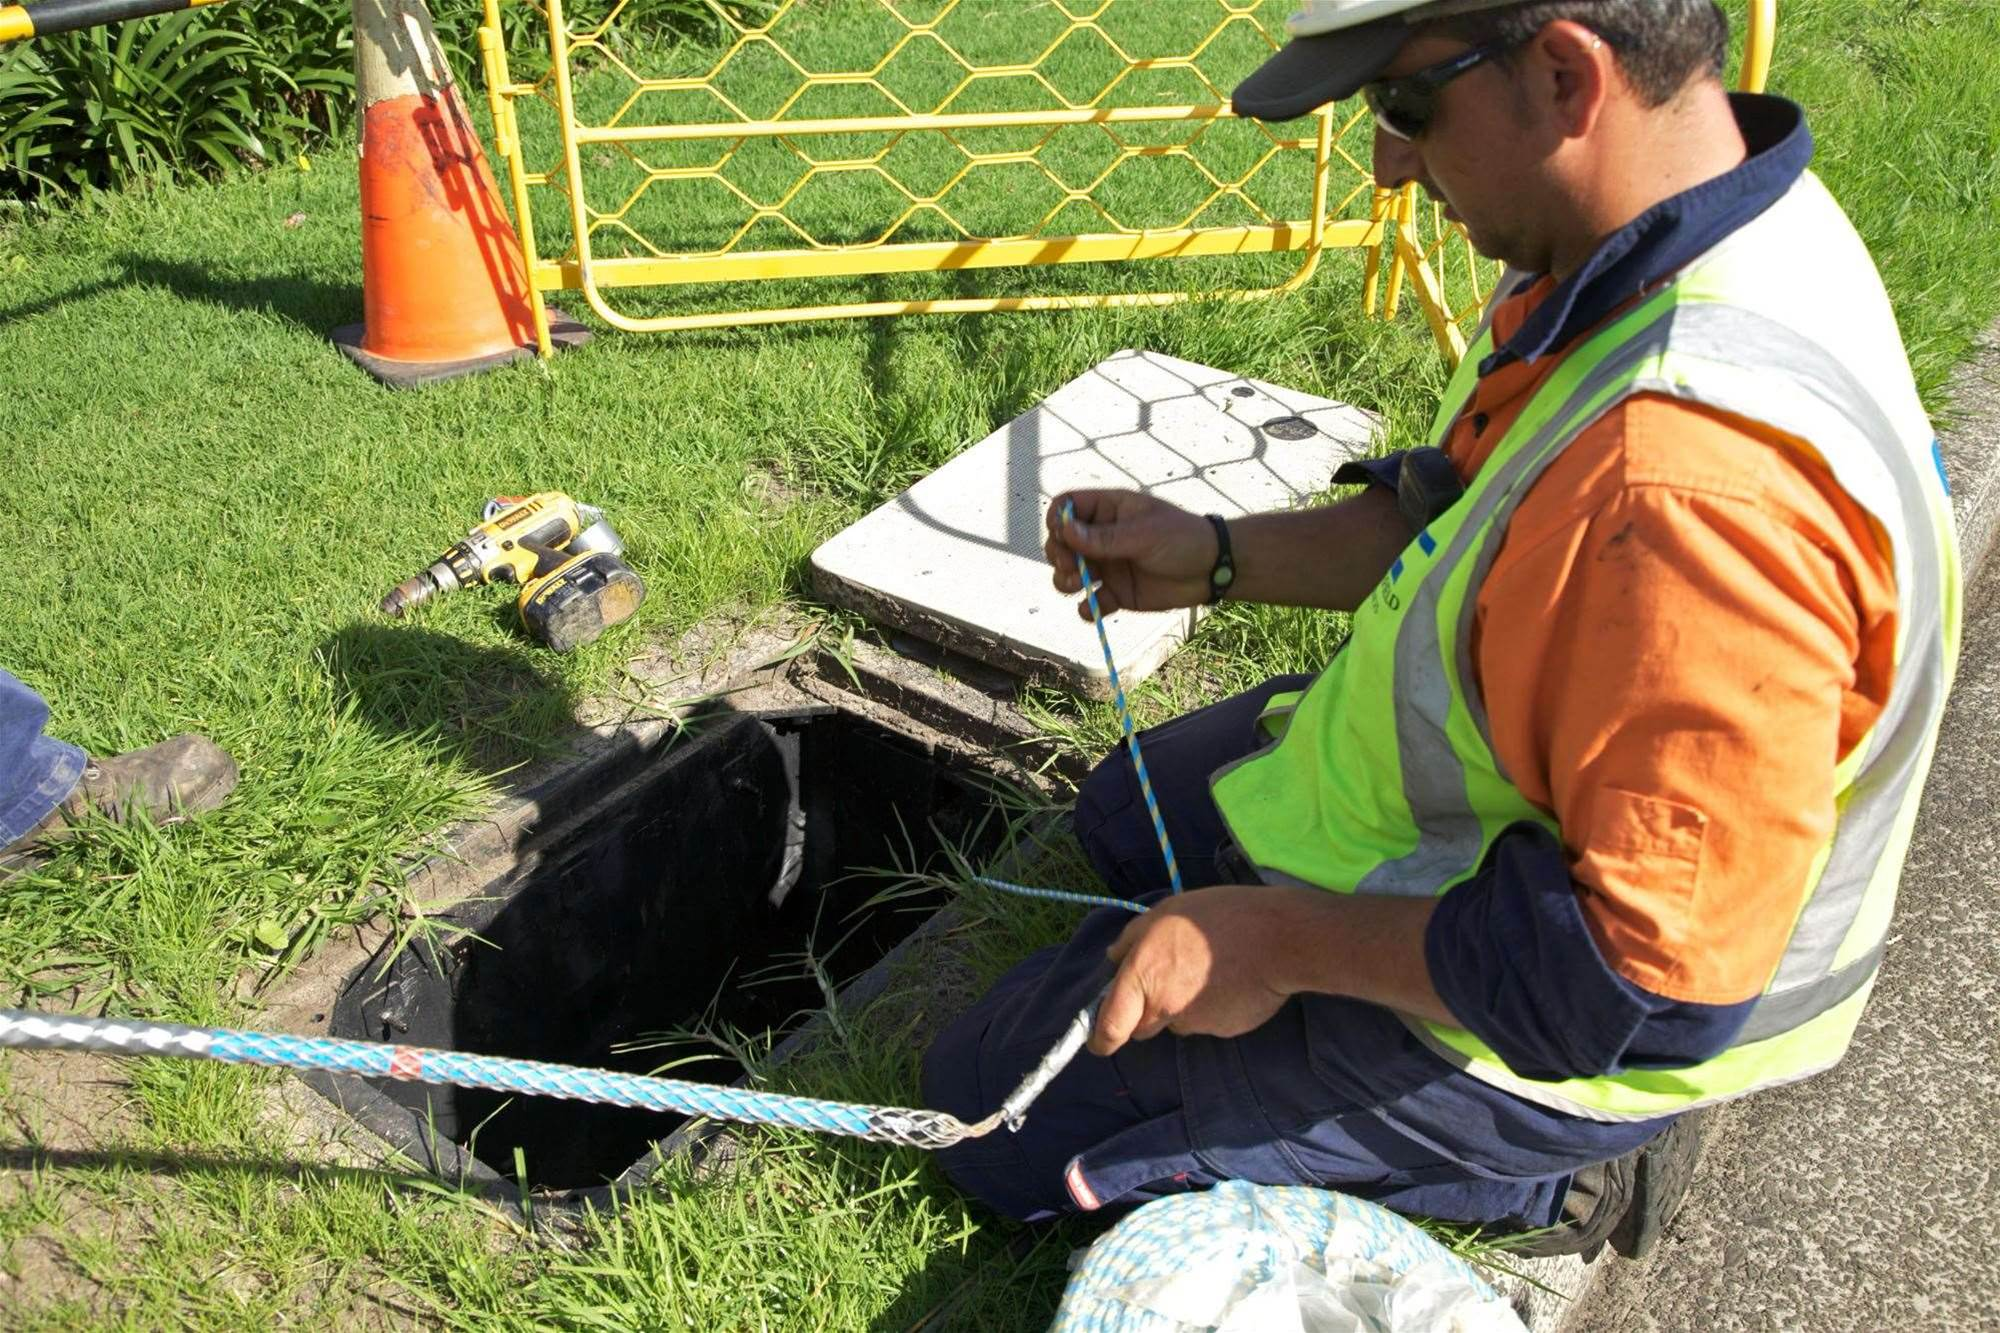 NBN Co defends fibre rollout progress